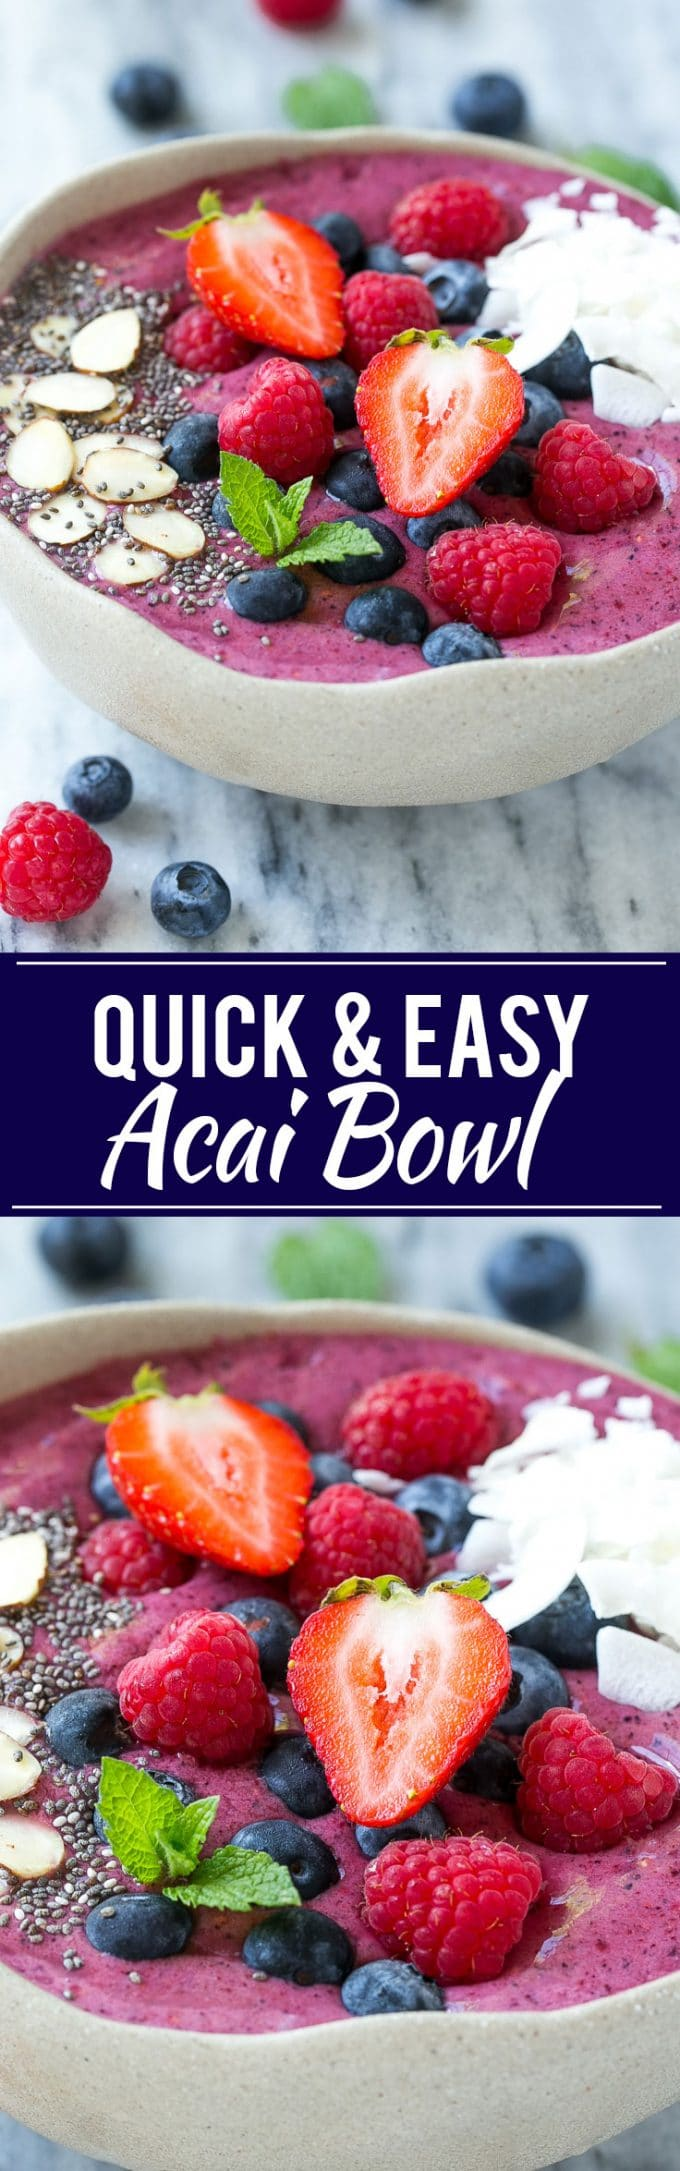 Acai Bowl Recipe | Smoothie Bowl #acaibowl #acai #fruit #smoothie #snack #dinneratthezoo